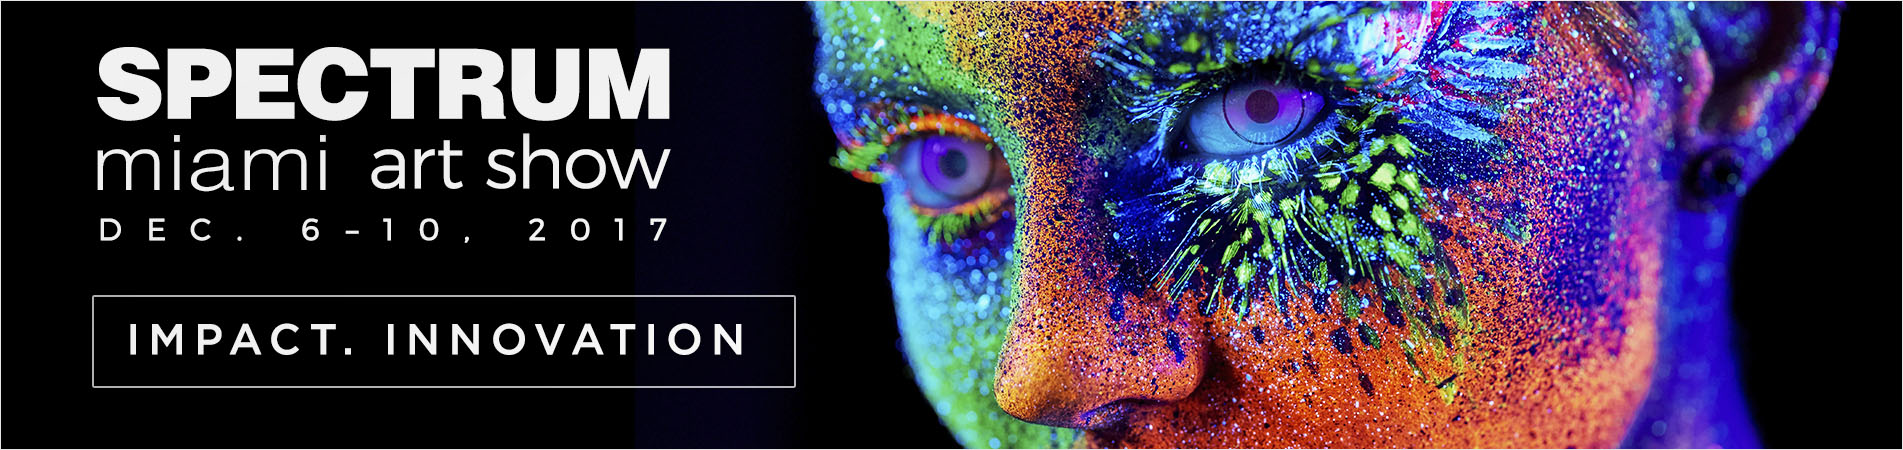 SMIA17 - Impact - Innovation